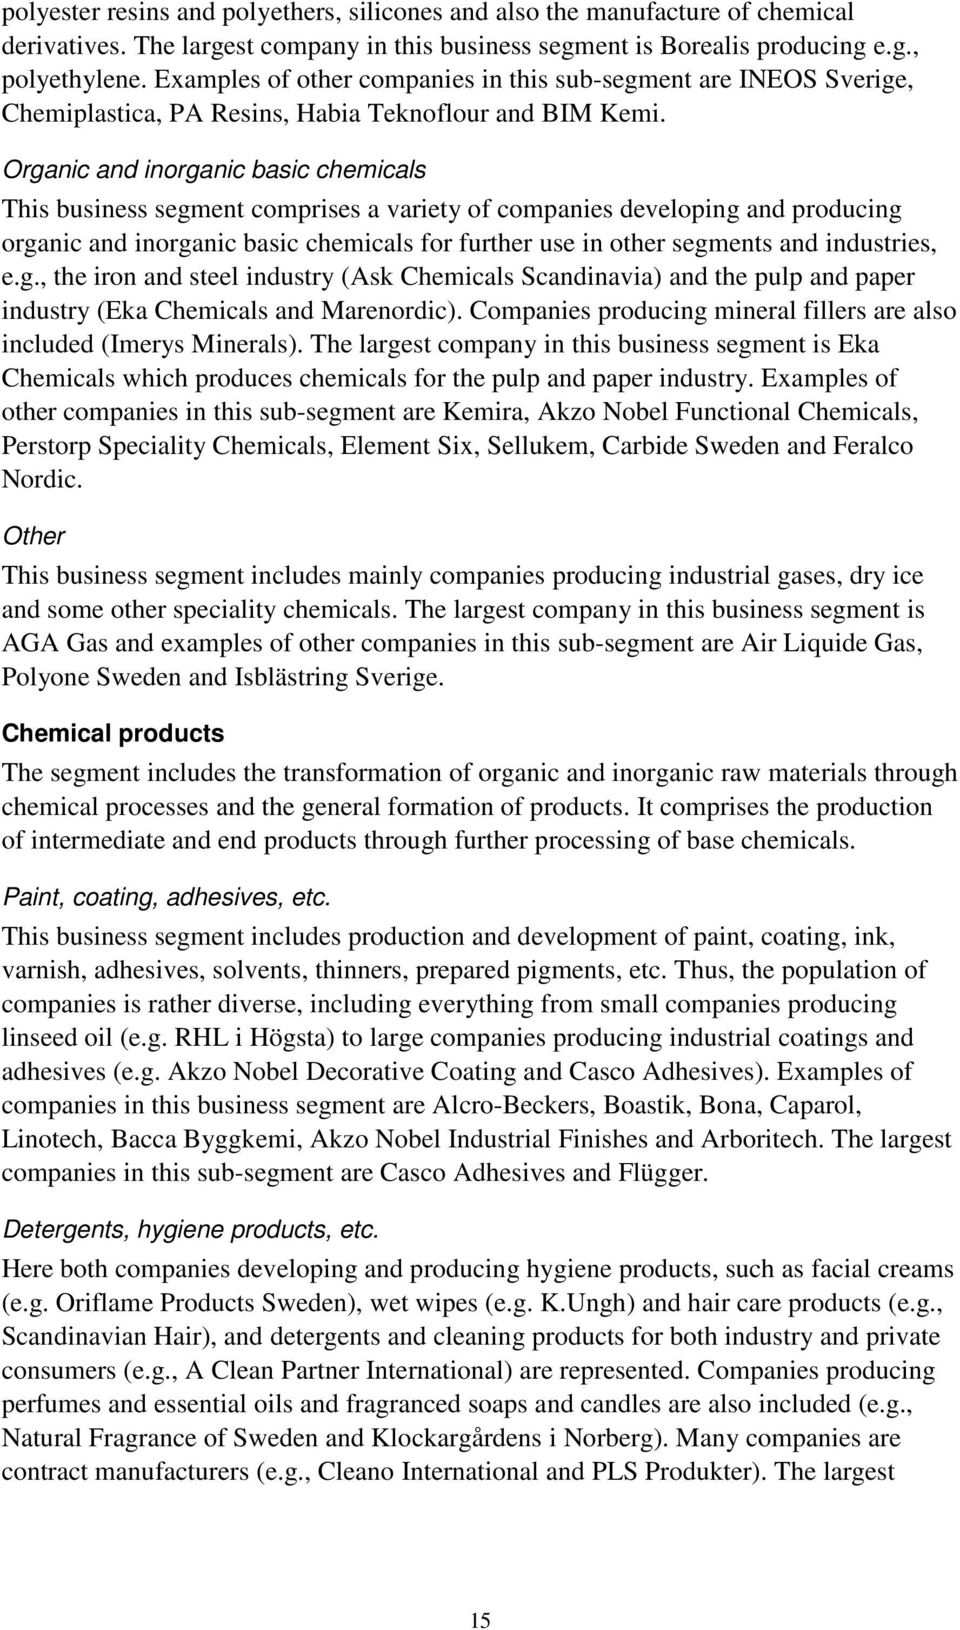 Organic and inorganic basic chemicals This business segment comprises a variety of companies developing and producing organic and inorganic basic chemicals for further use in other segments and